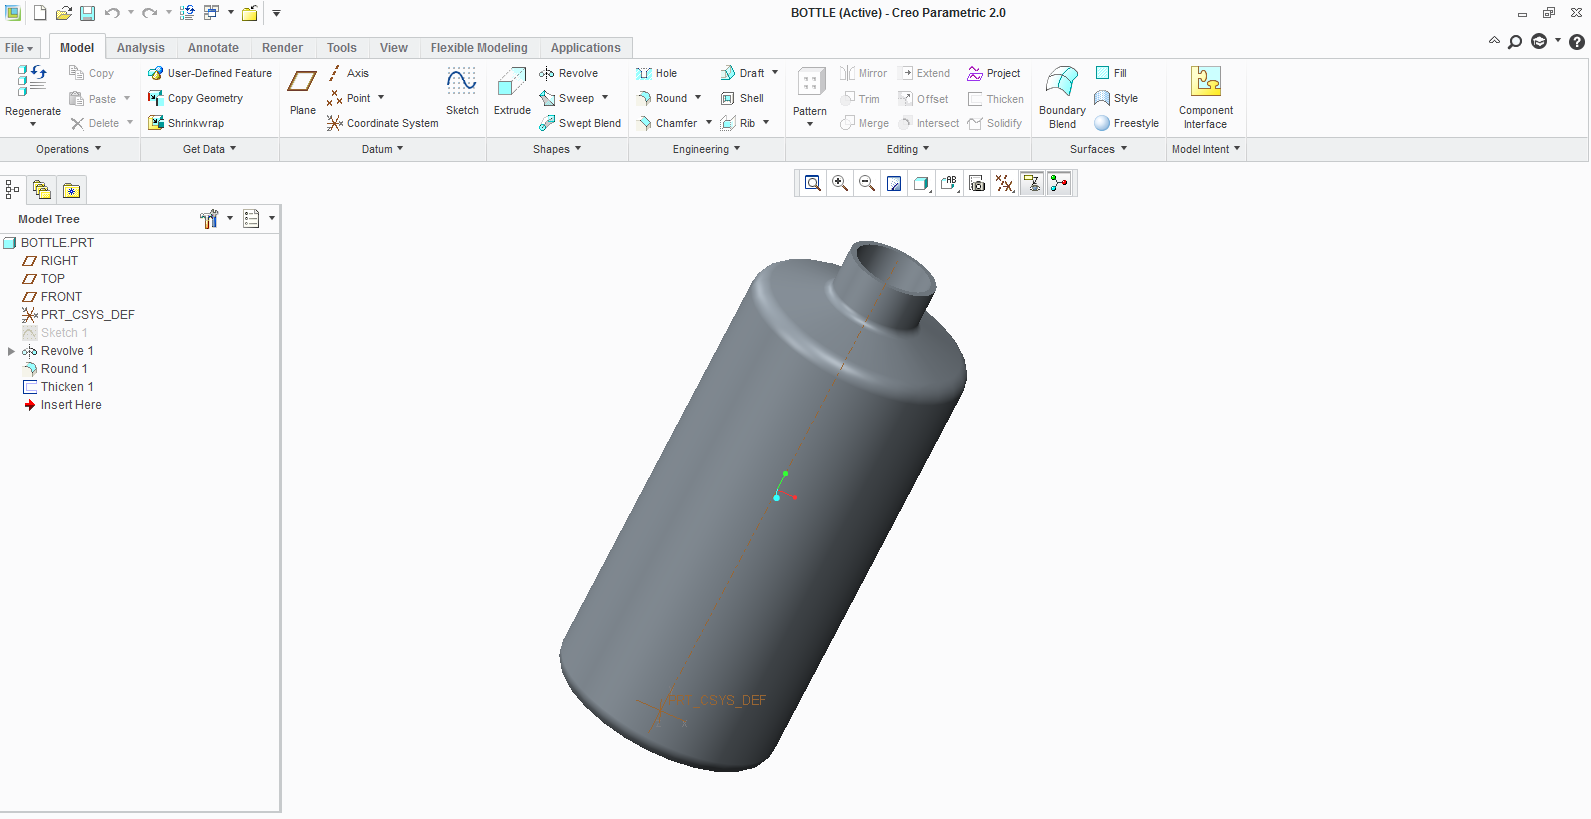 Is simulation of water bottle possible in Creo 2 0